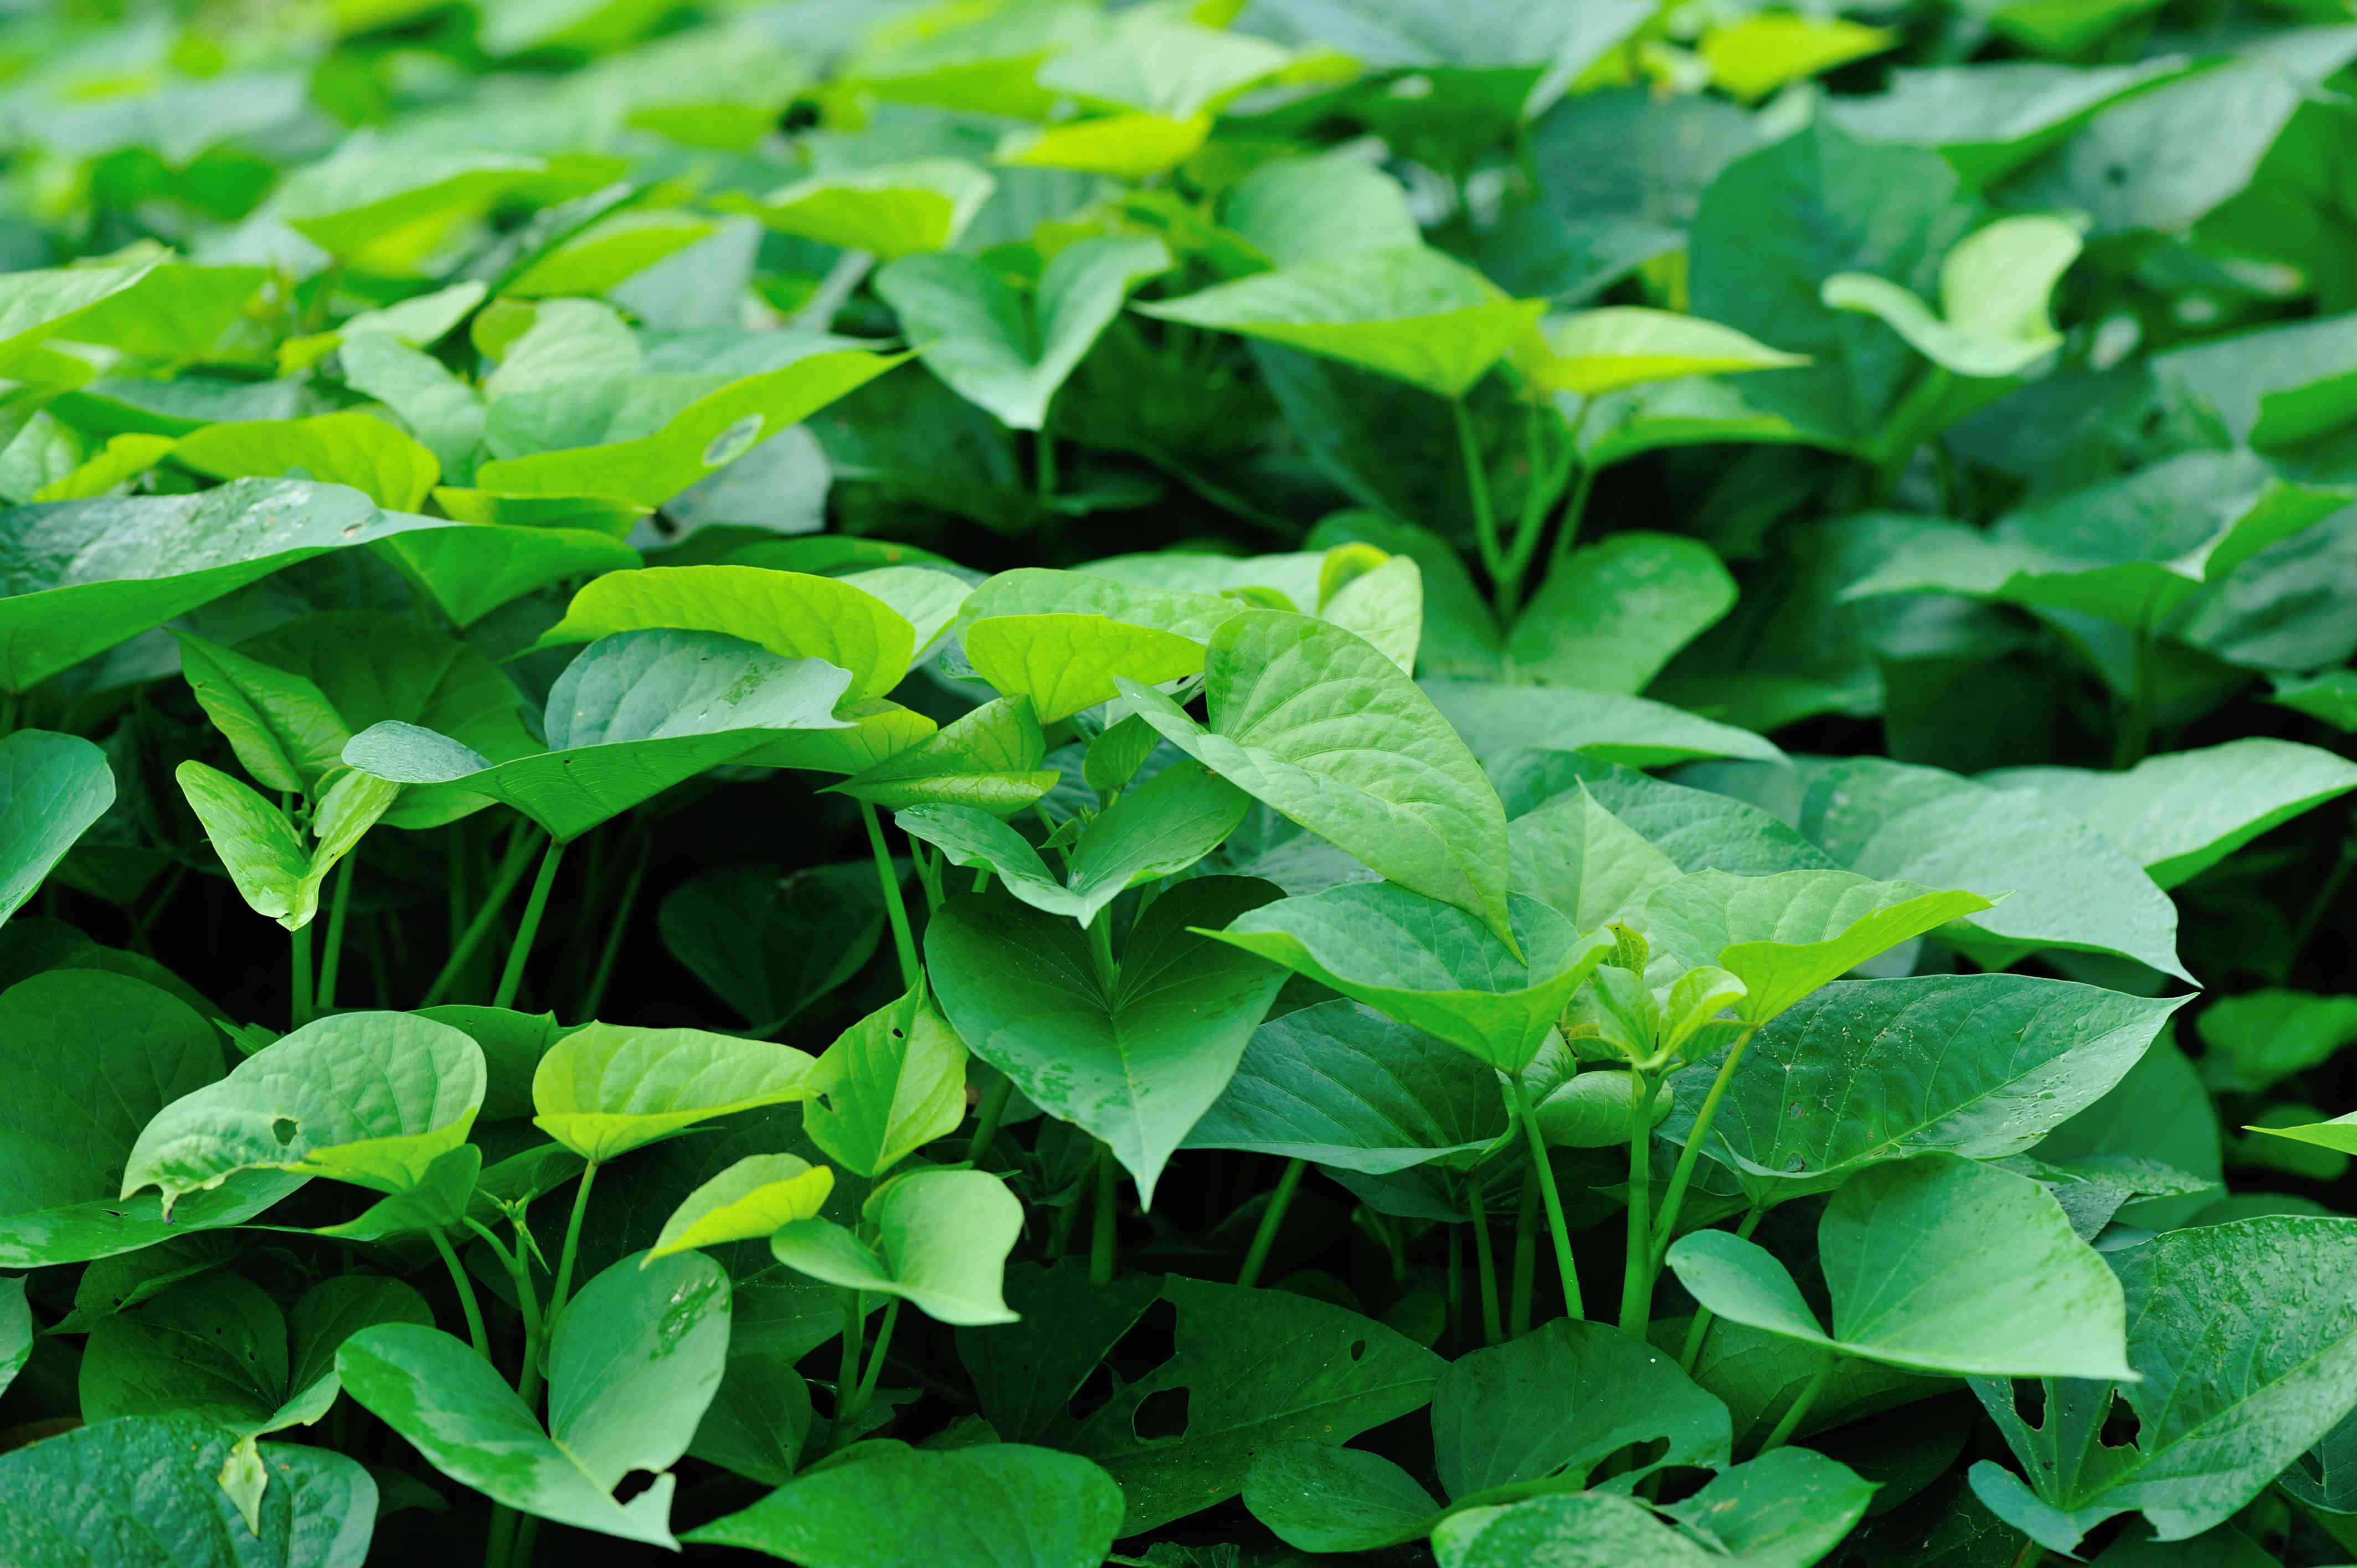 green sweet potato leaves in growth at garden